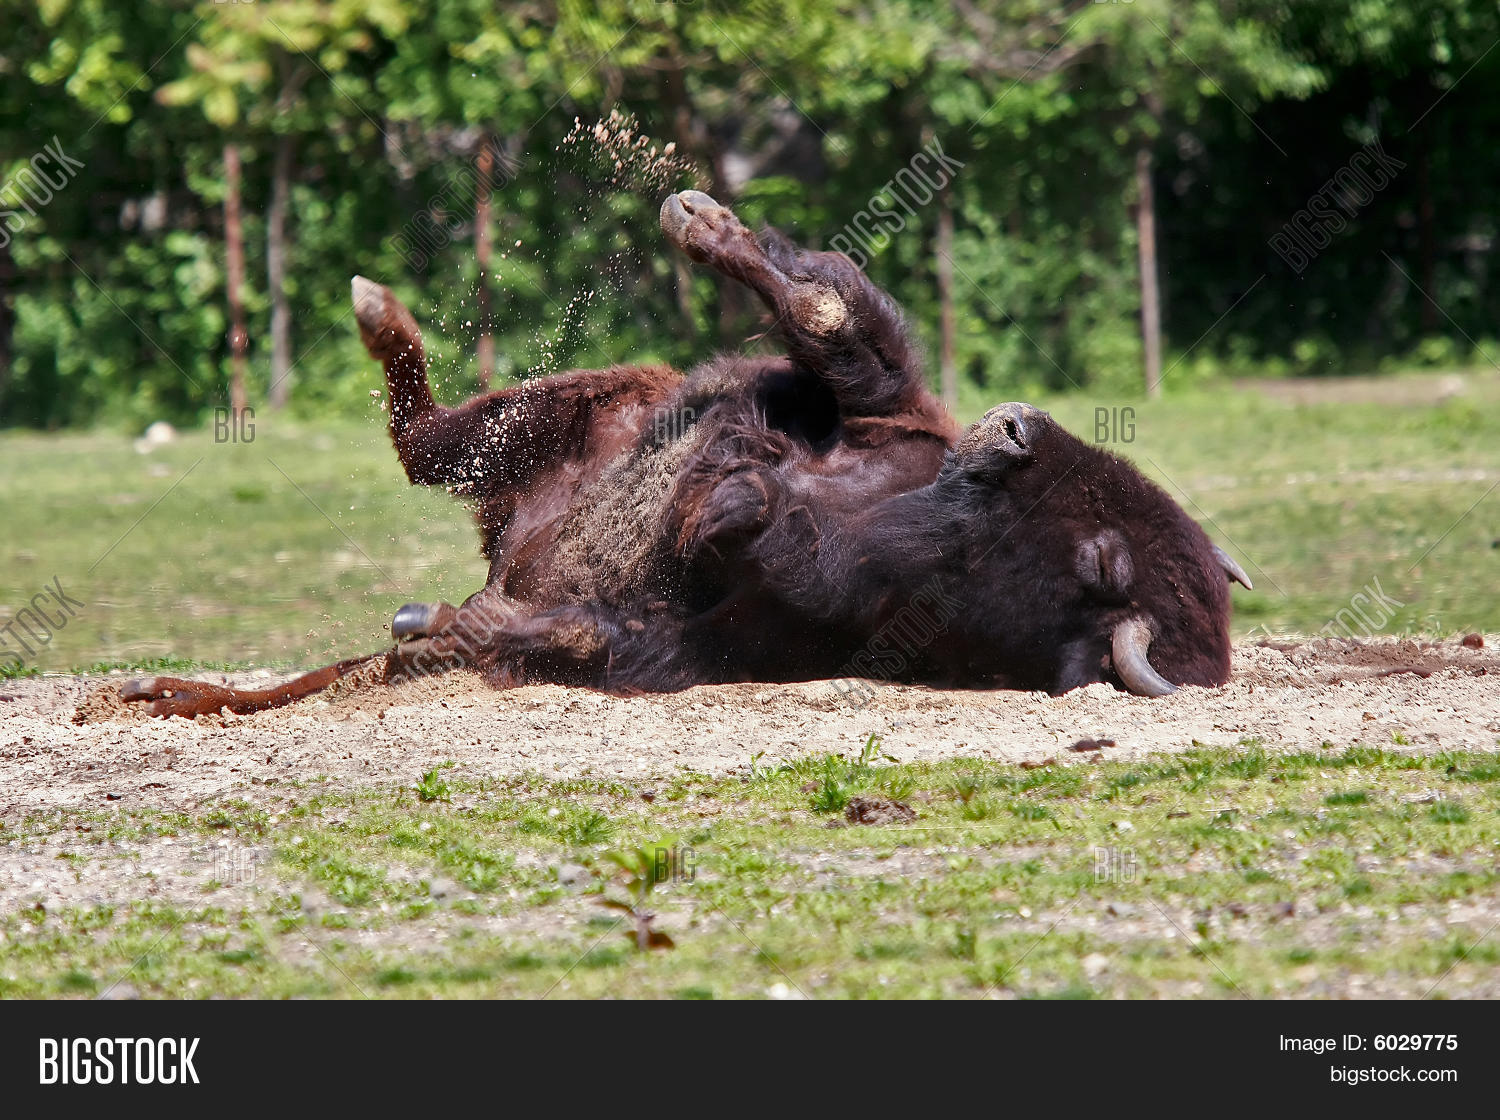 Bison Removing Image Photo Free Trial Bigstock